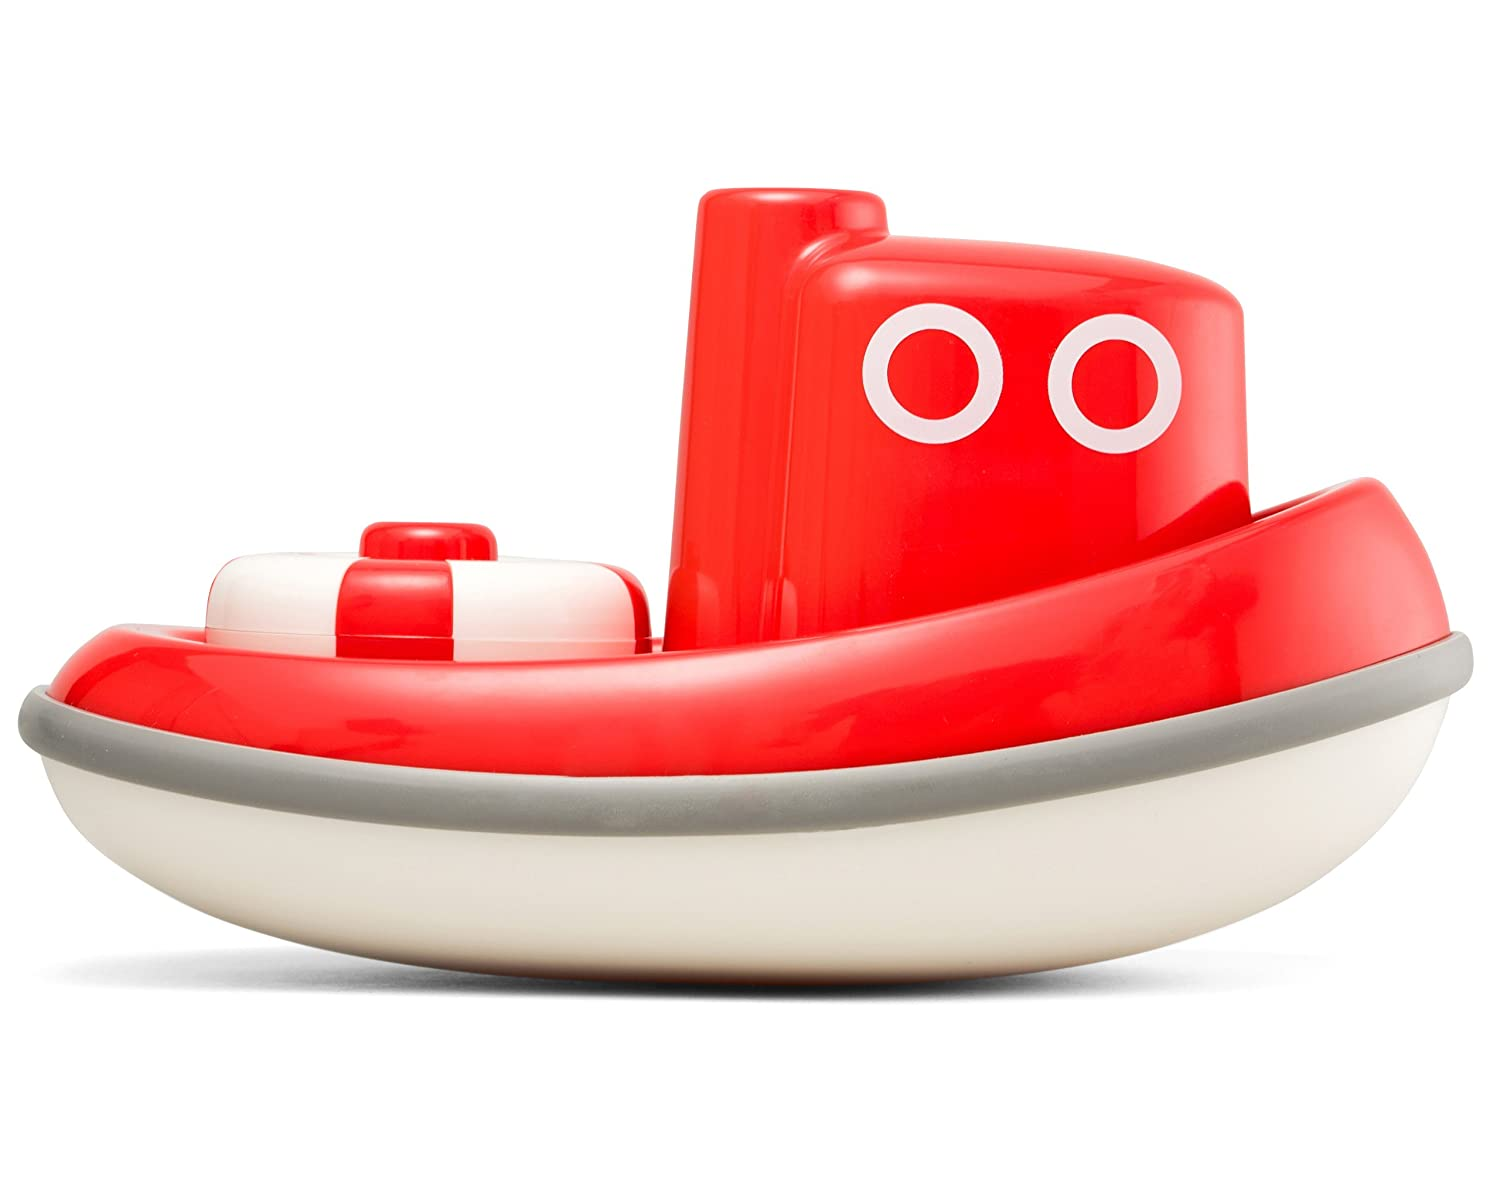 Amazon.com: Kid O Floating Tug Boat Toddler Bath Toy - Red: Toys & Games